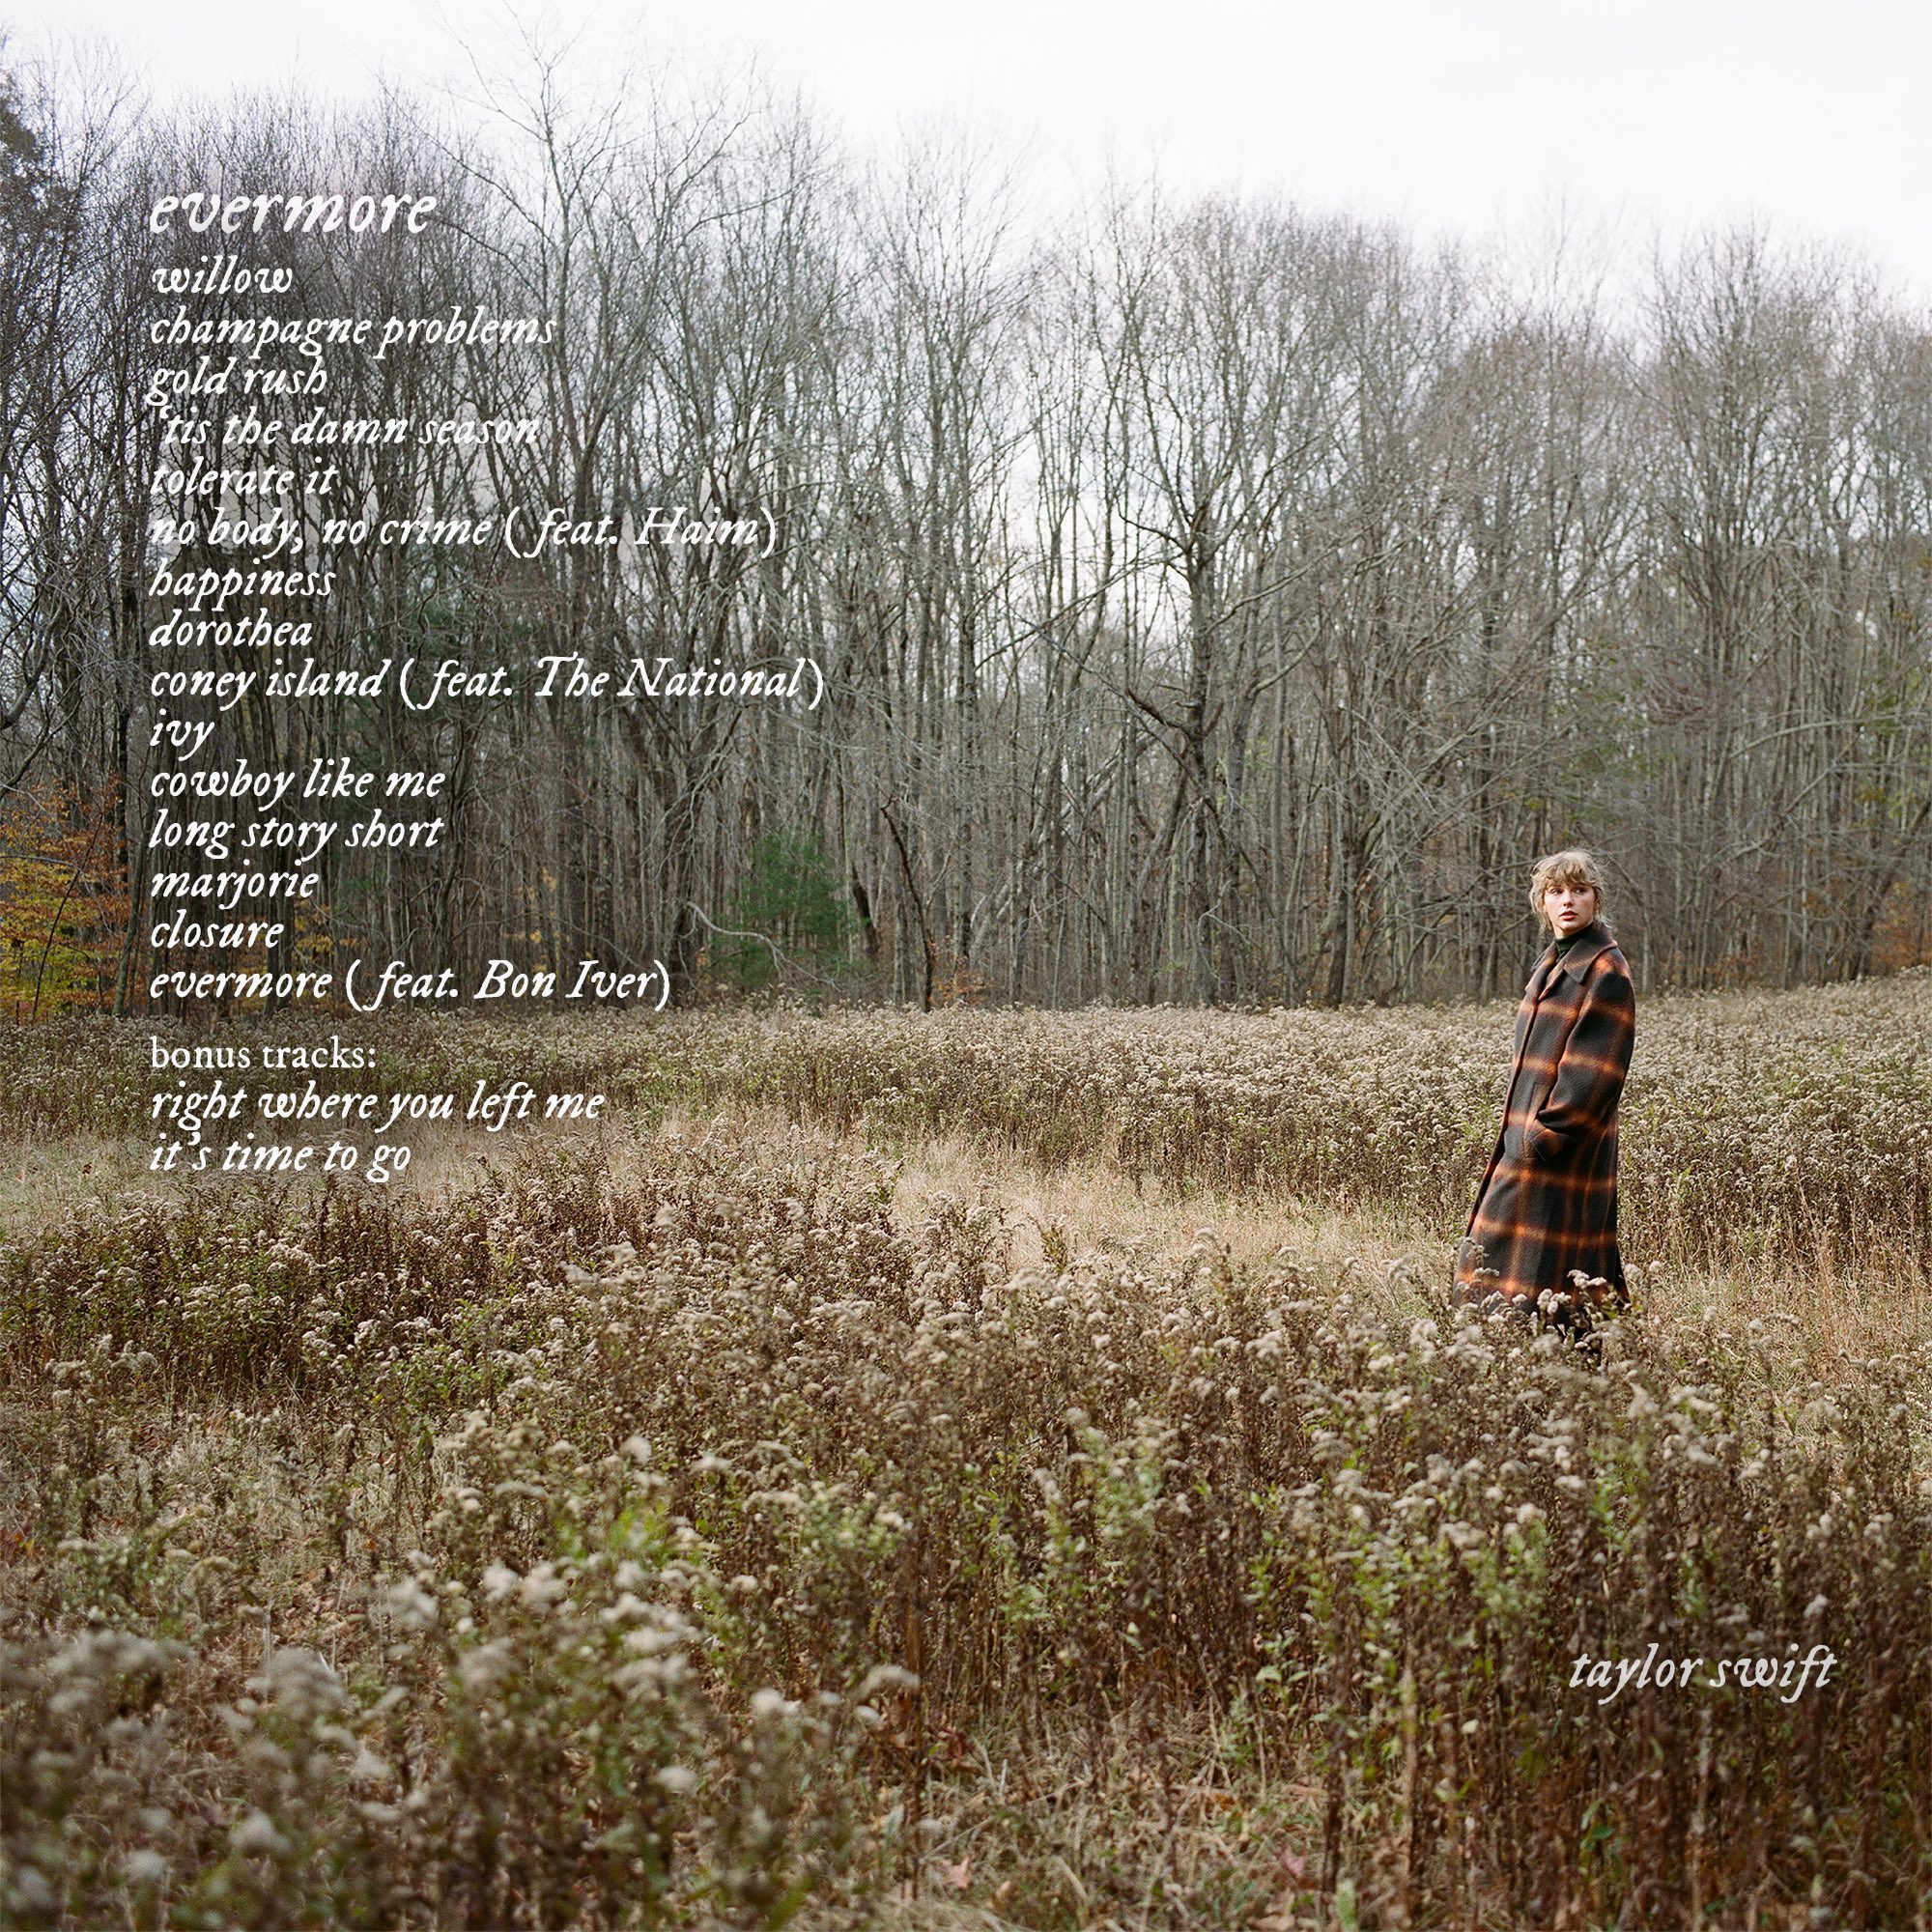 Taylor Swift Evermore Back Cover - Taylor Swift - evermore (Album)